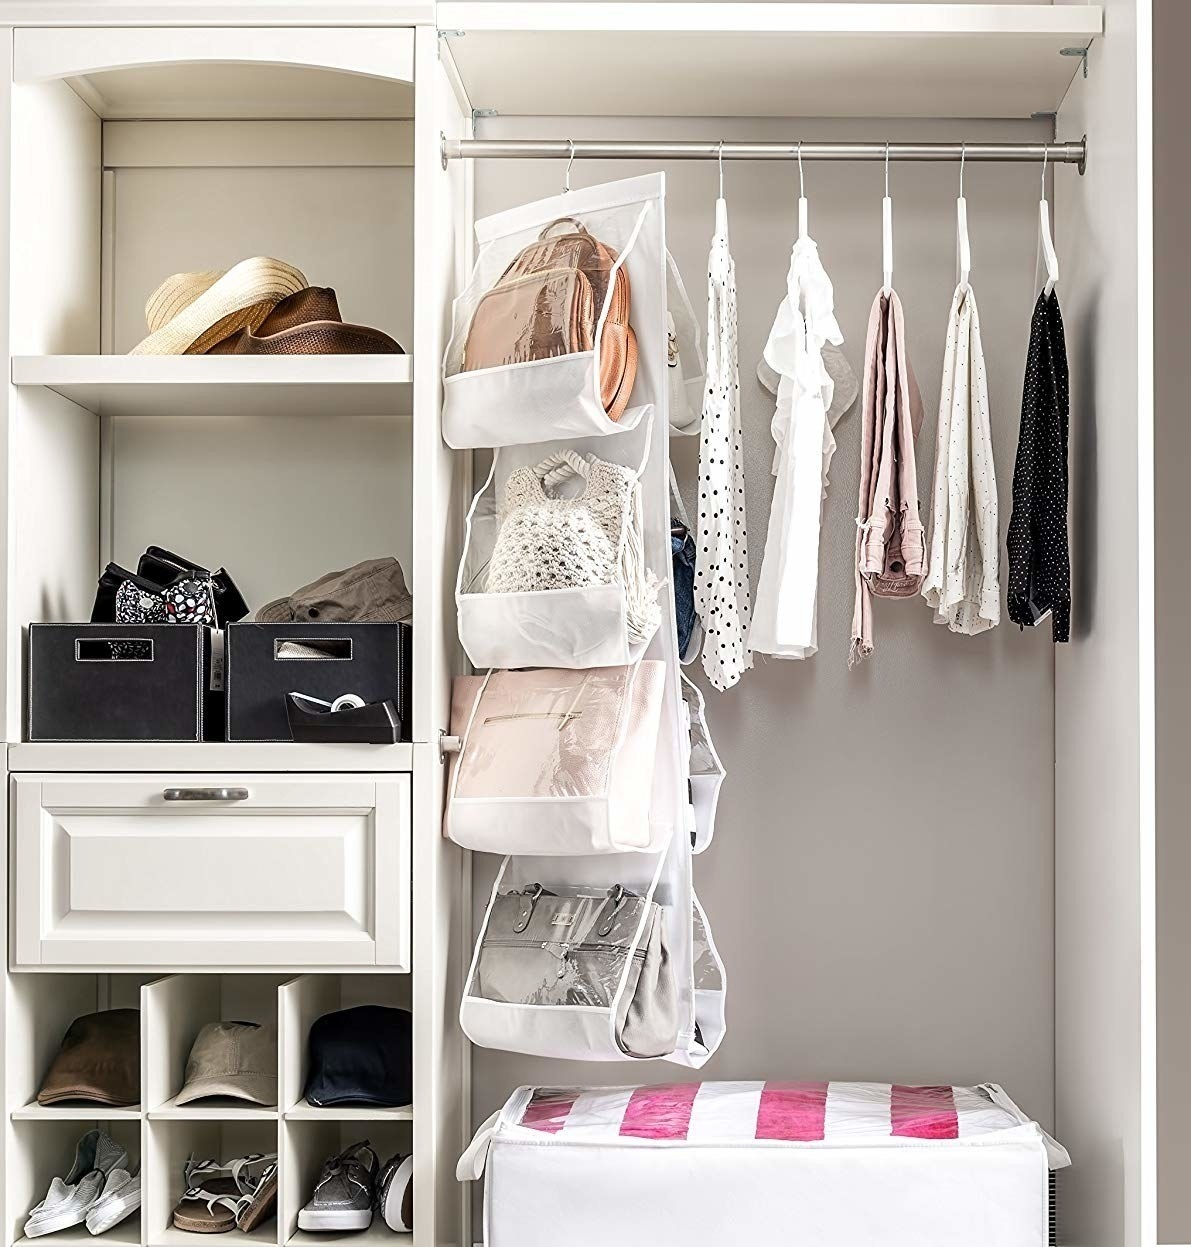 hanging purse organizer hung in closet with different purses inside each pocket